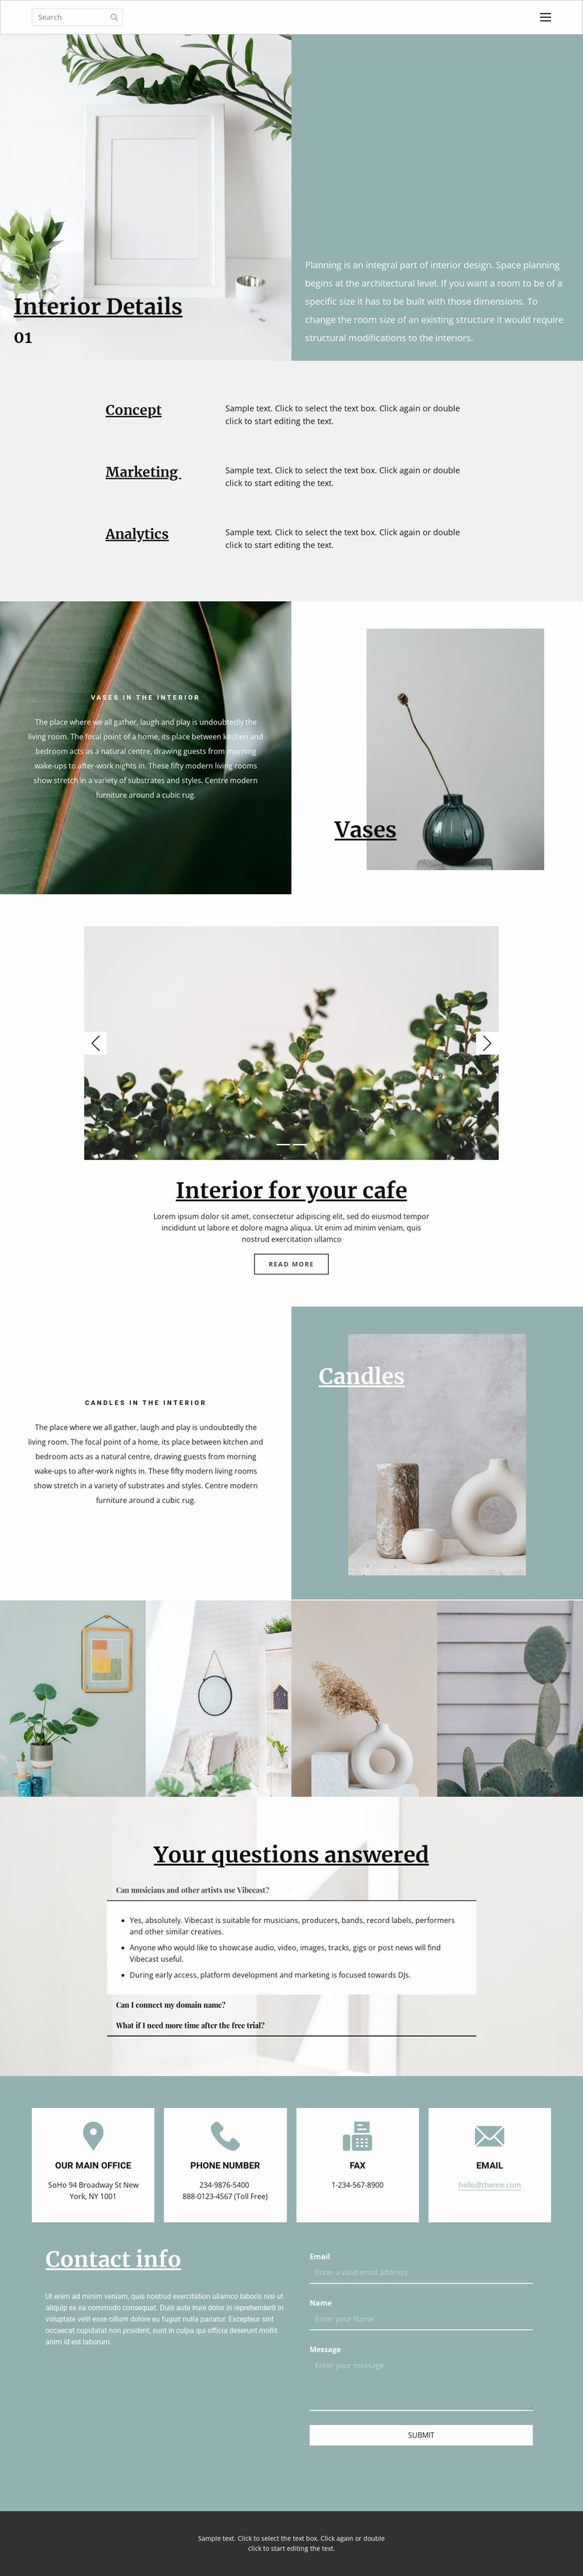 Help in organizing the space at home Landing Page